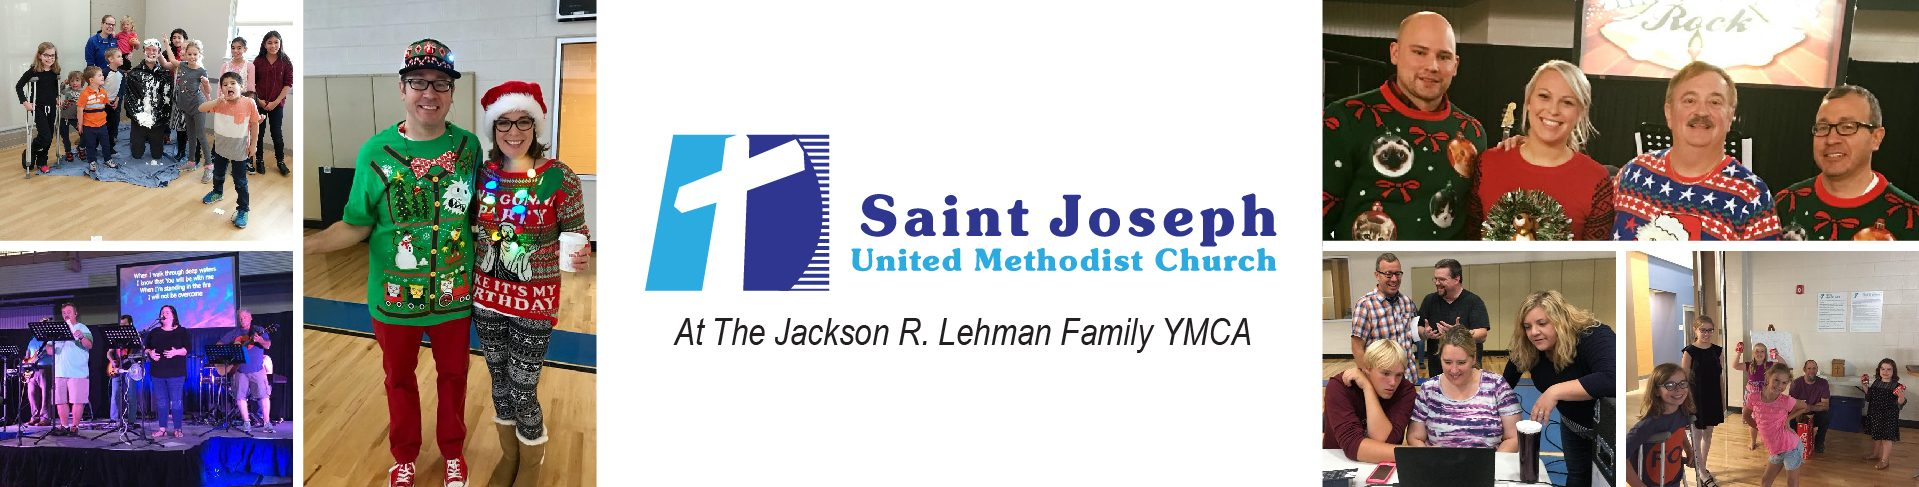 Saint Joseph at the YMCA